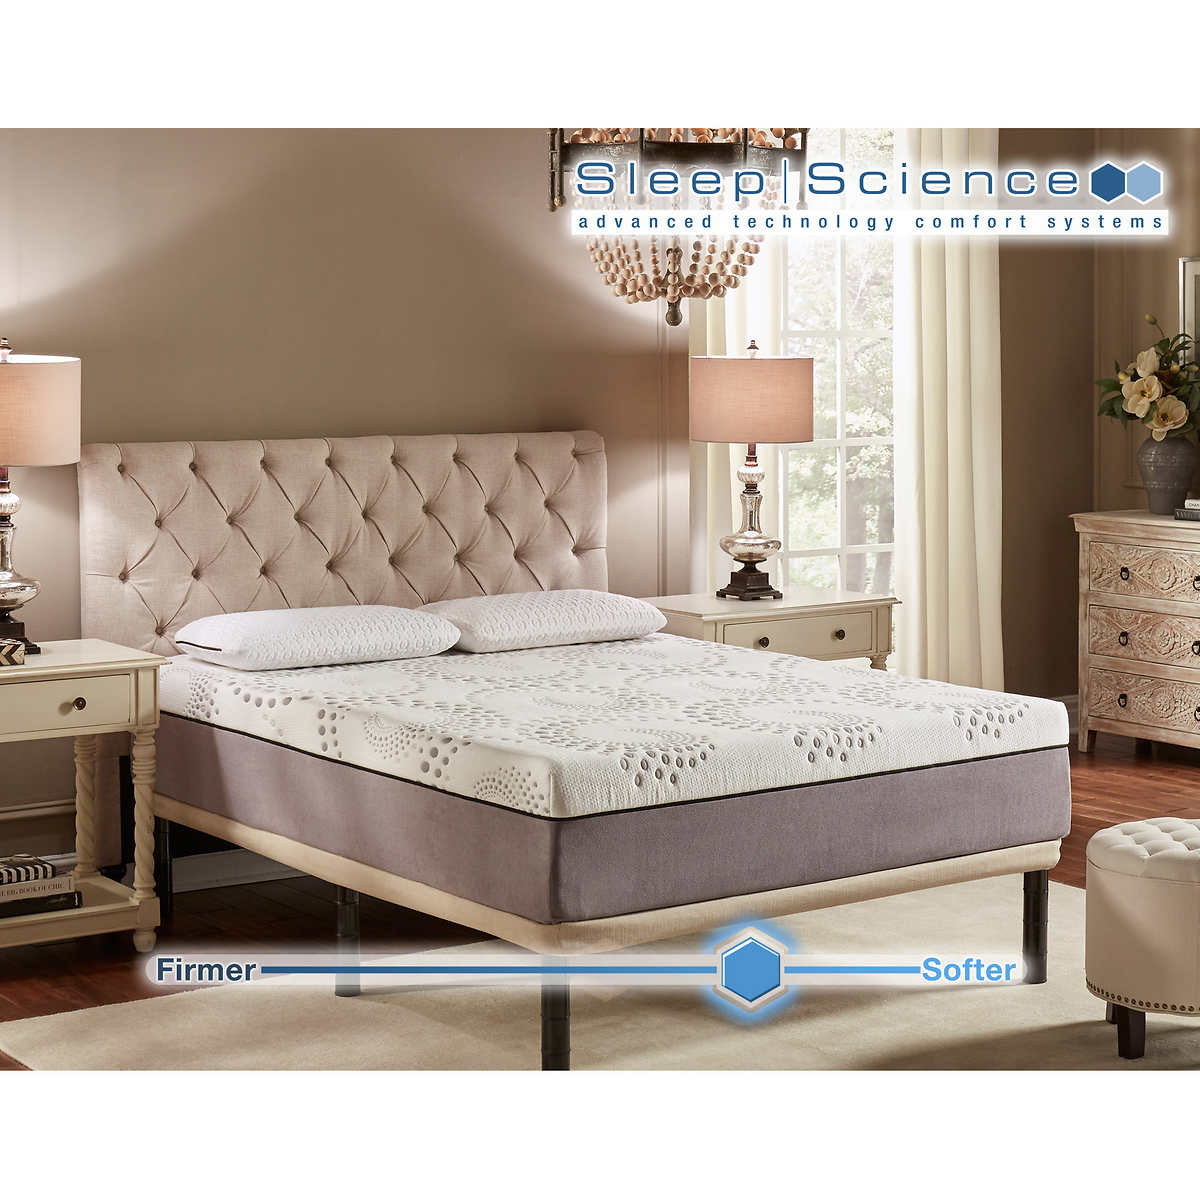 1 1 - California King Memory Foam Mattress